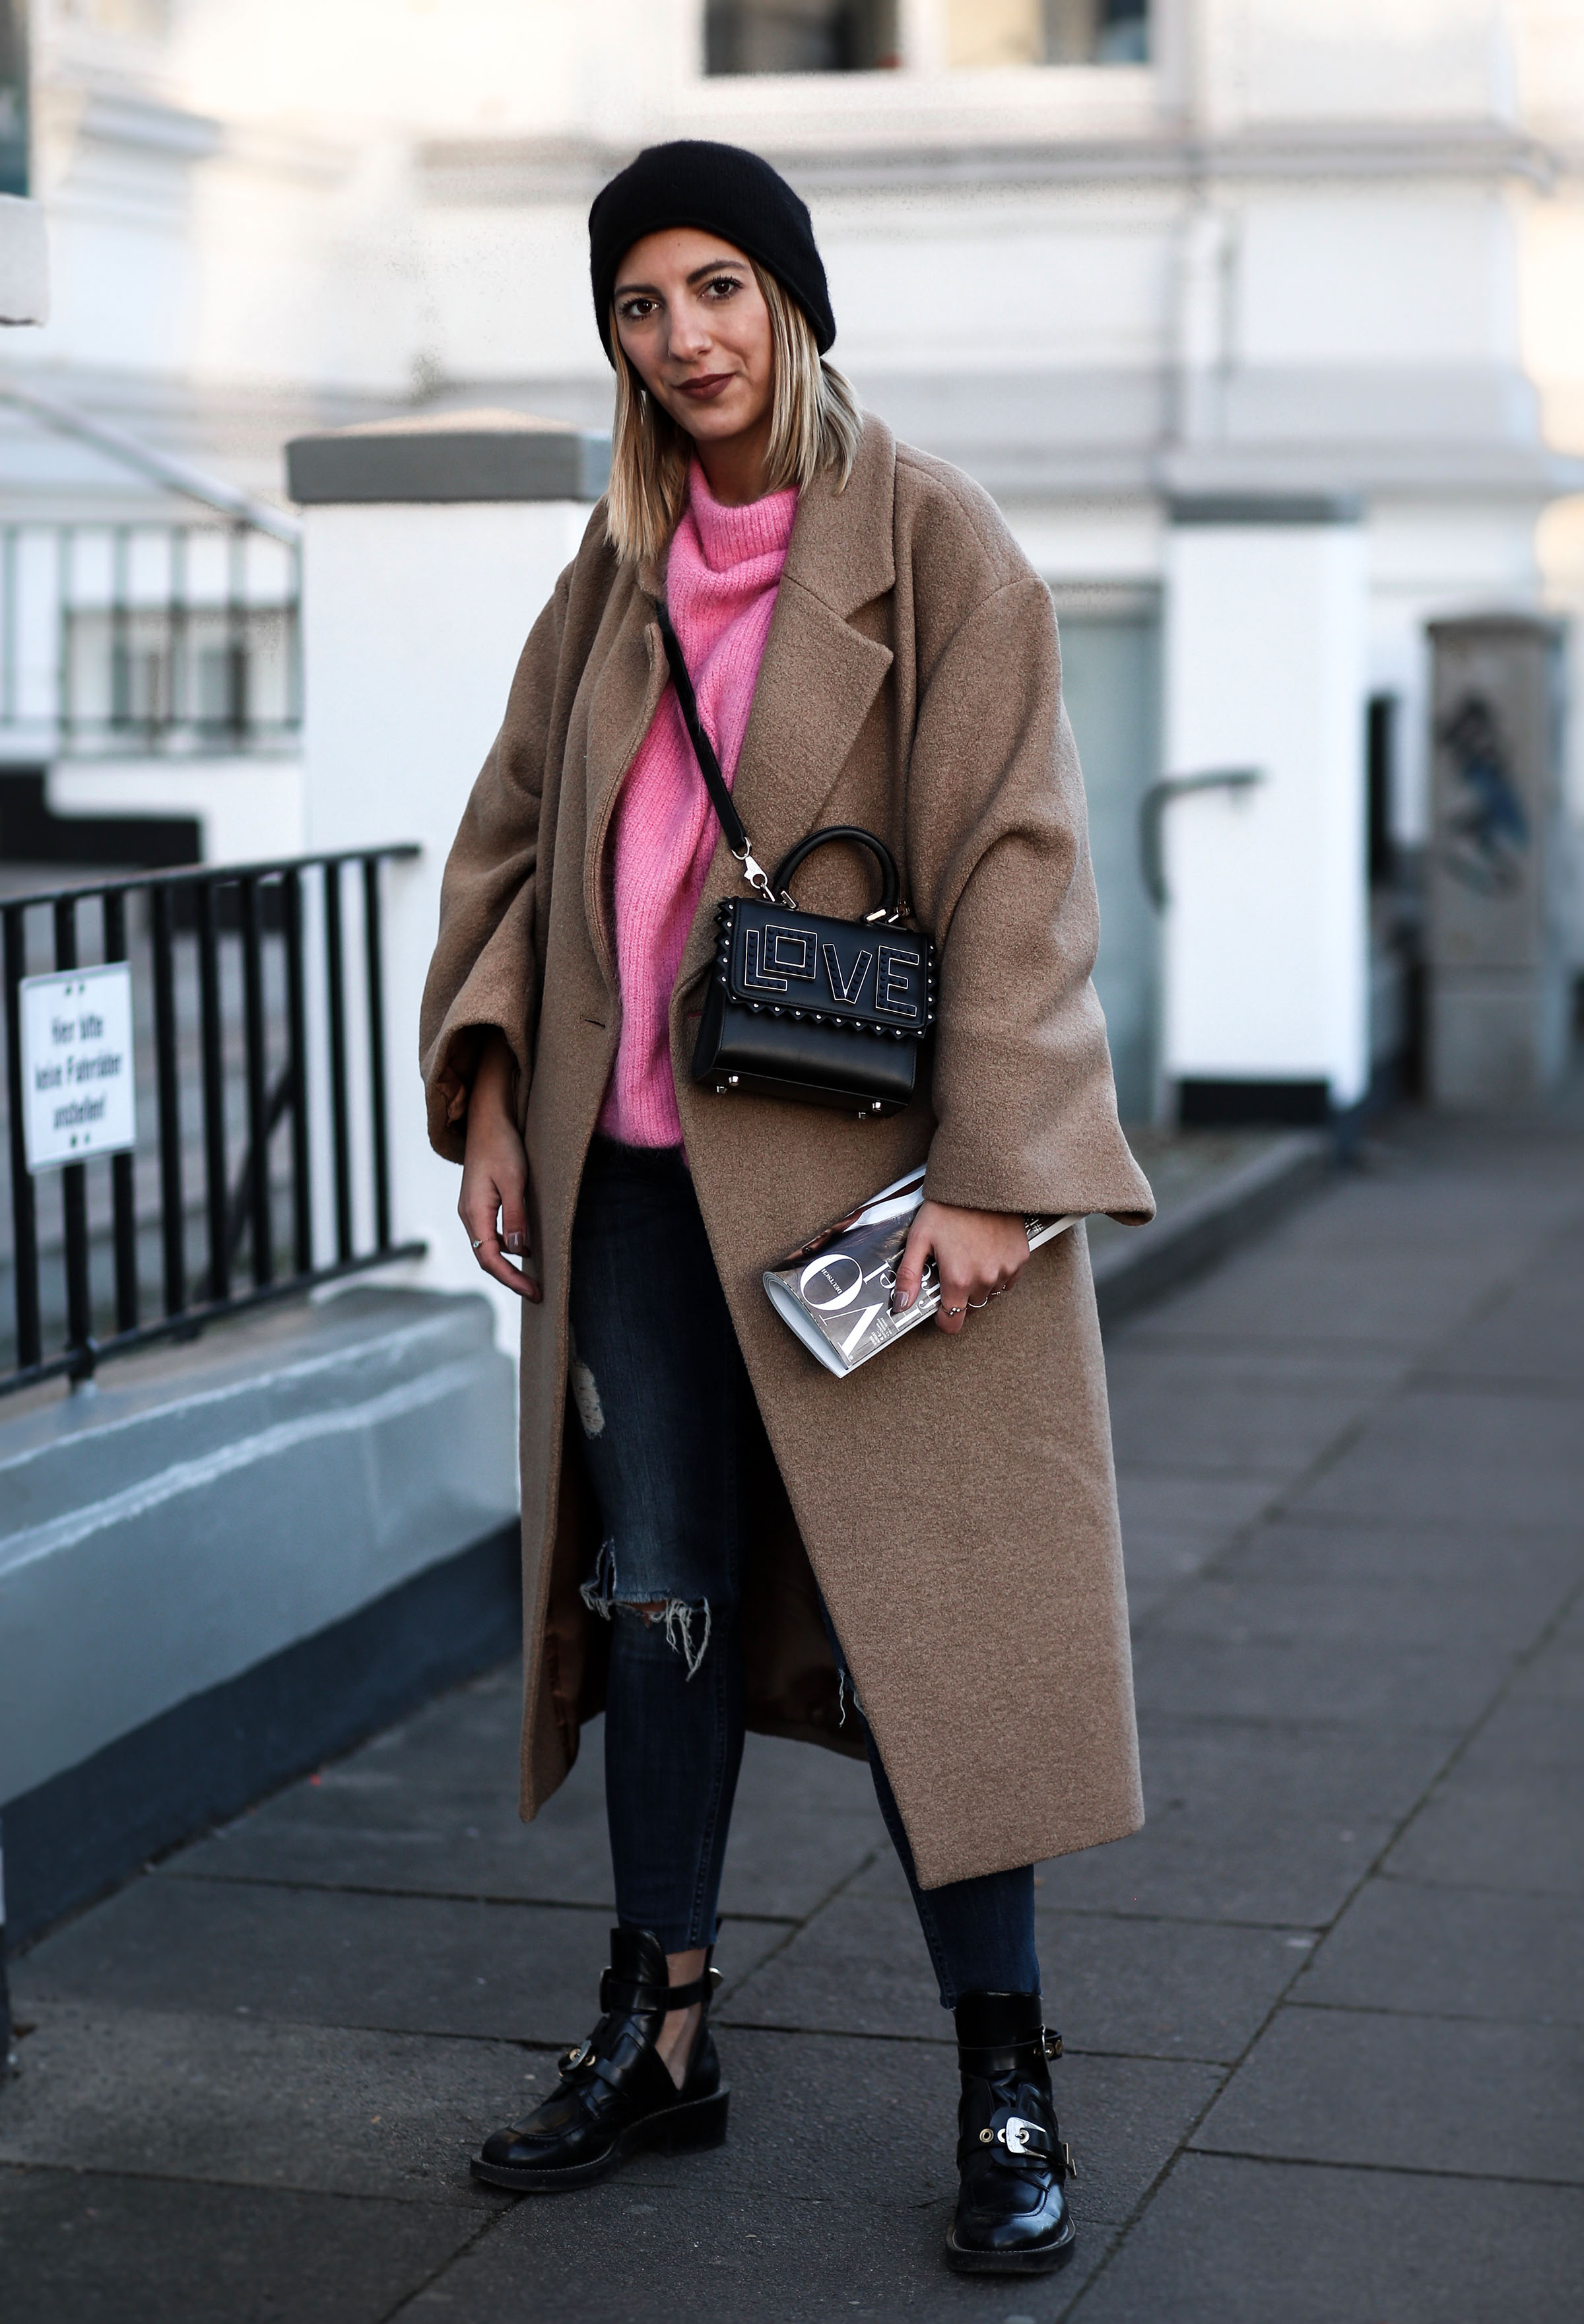 hm_trend_pink_oversized_sweater